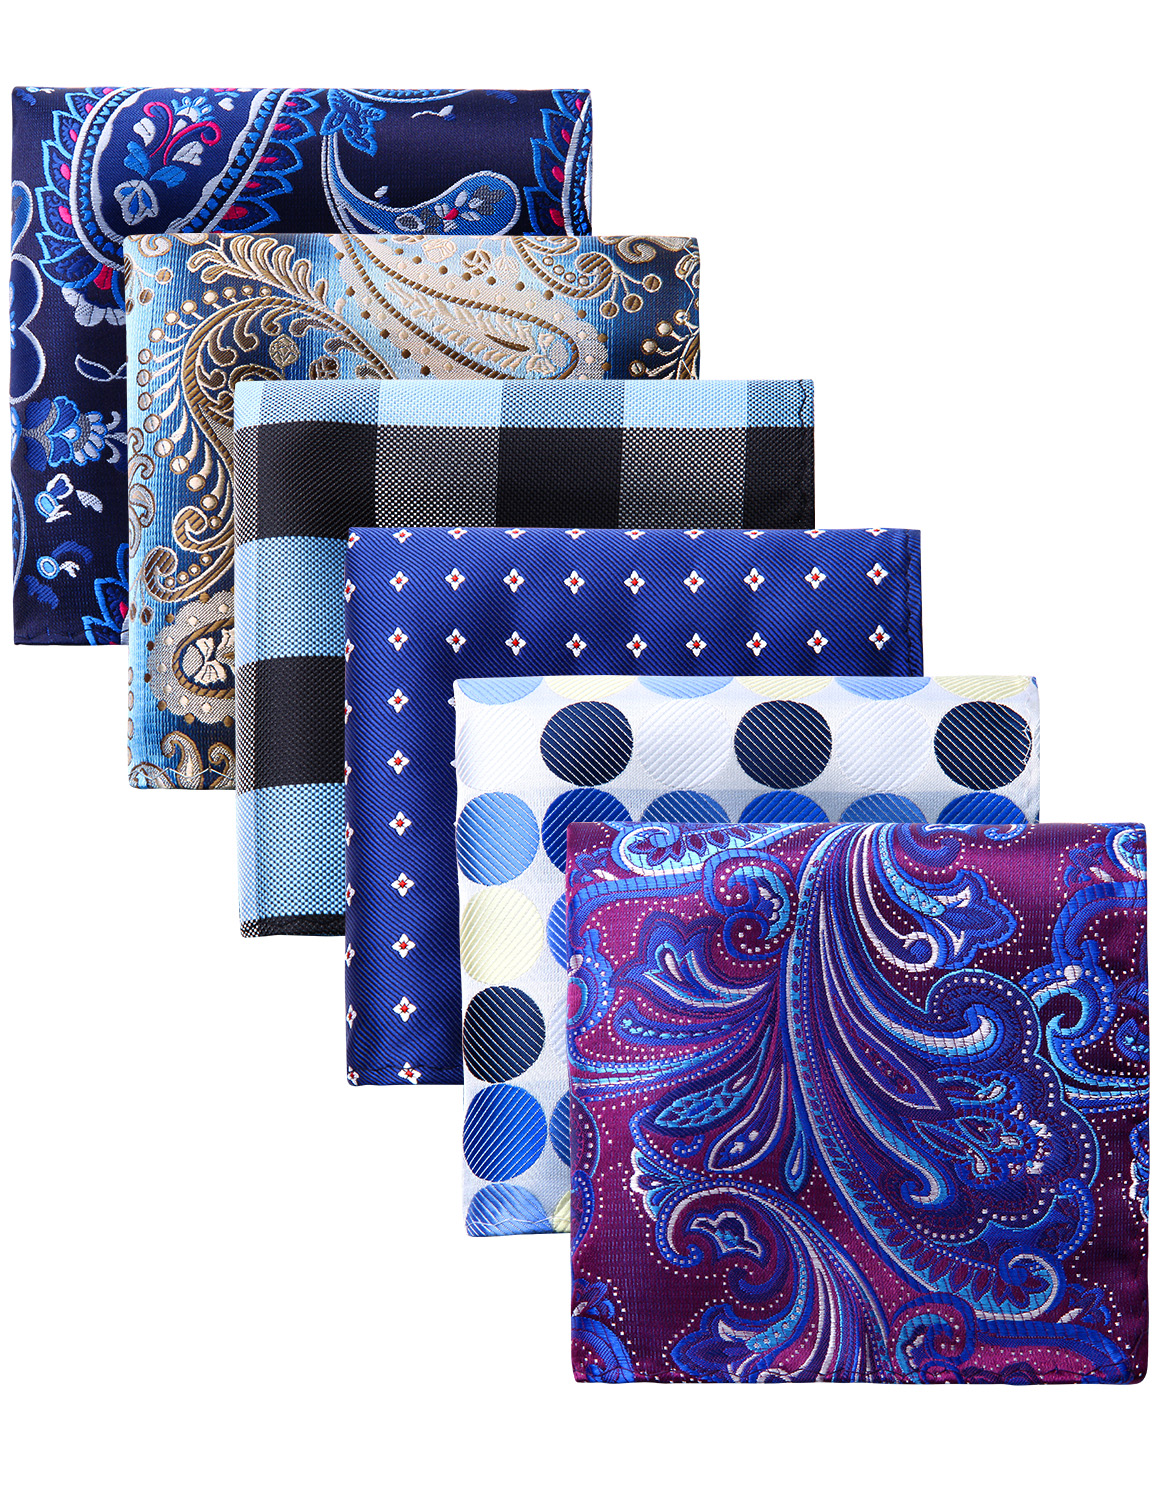 Pocket Square Men Fashion Paisley Polka Dot Floral 6 Pcs  25 X 25 Cm Wedding Party Business Handkerchief Gift Box Set